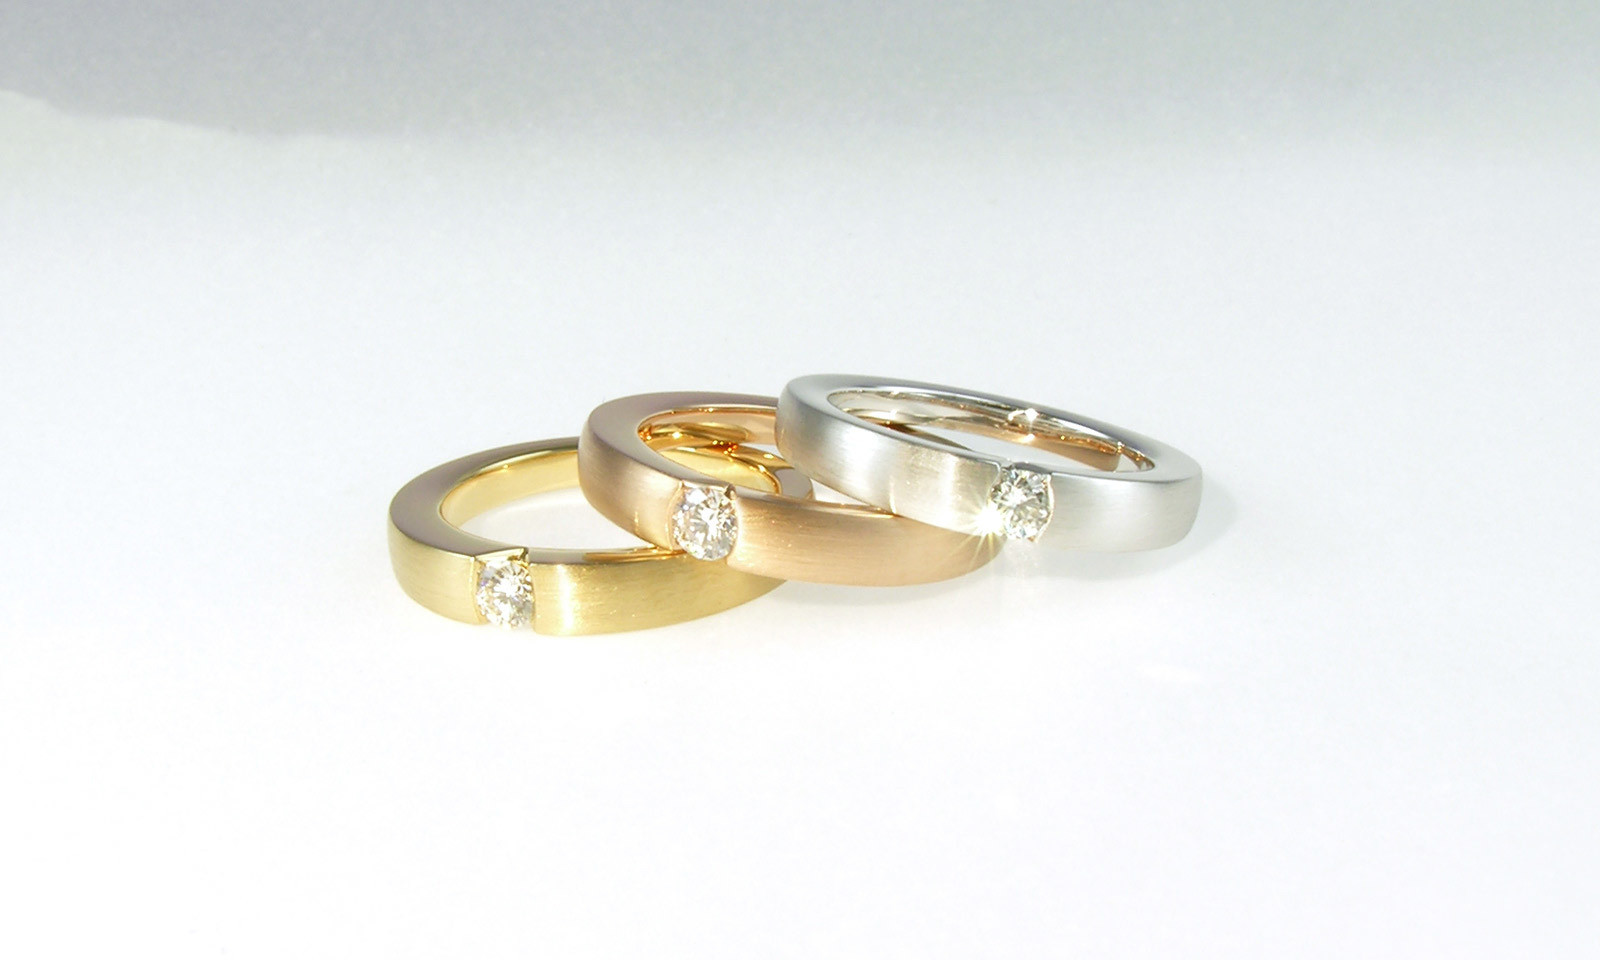 Ringe Solitaire. Ring Gelbgold 750 / Rotgold 750 / Weissgold 750 mit Brillant TW vs d 3.5 mm, jeweils CHF 2200.-